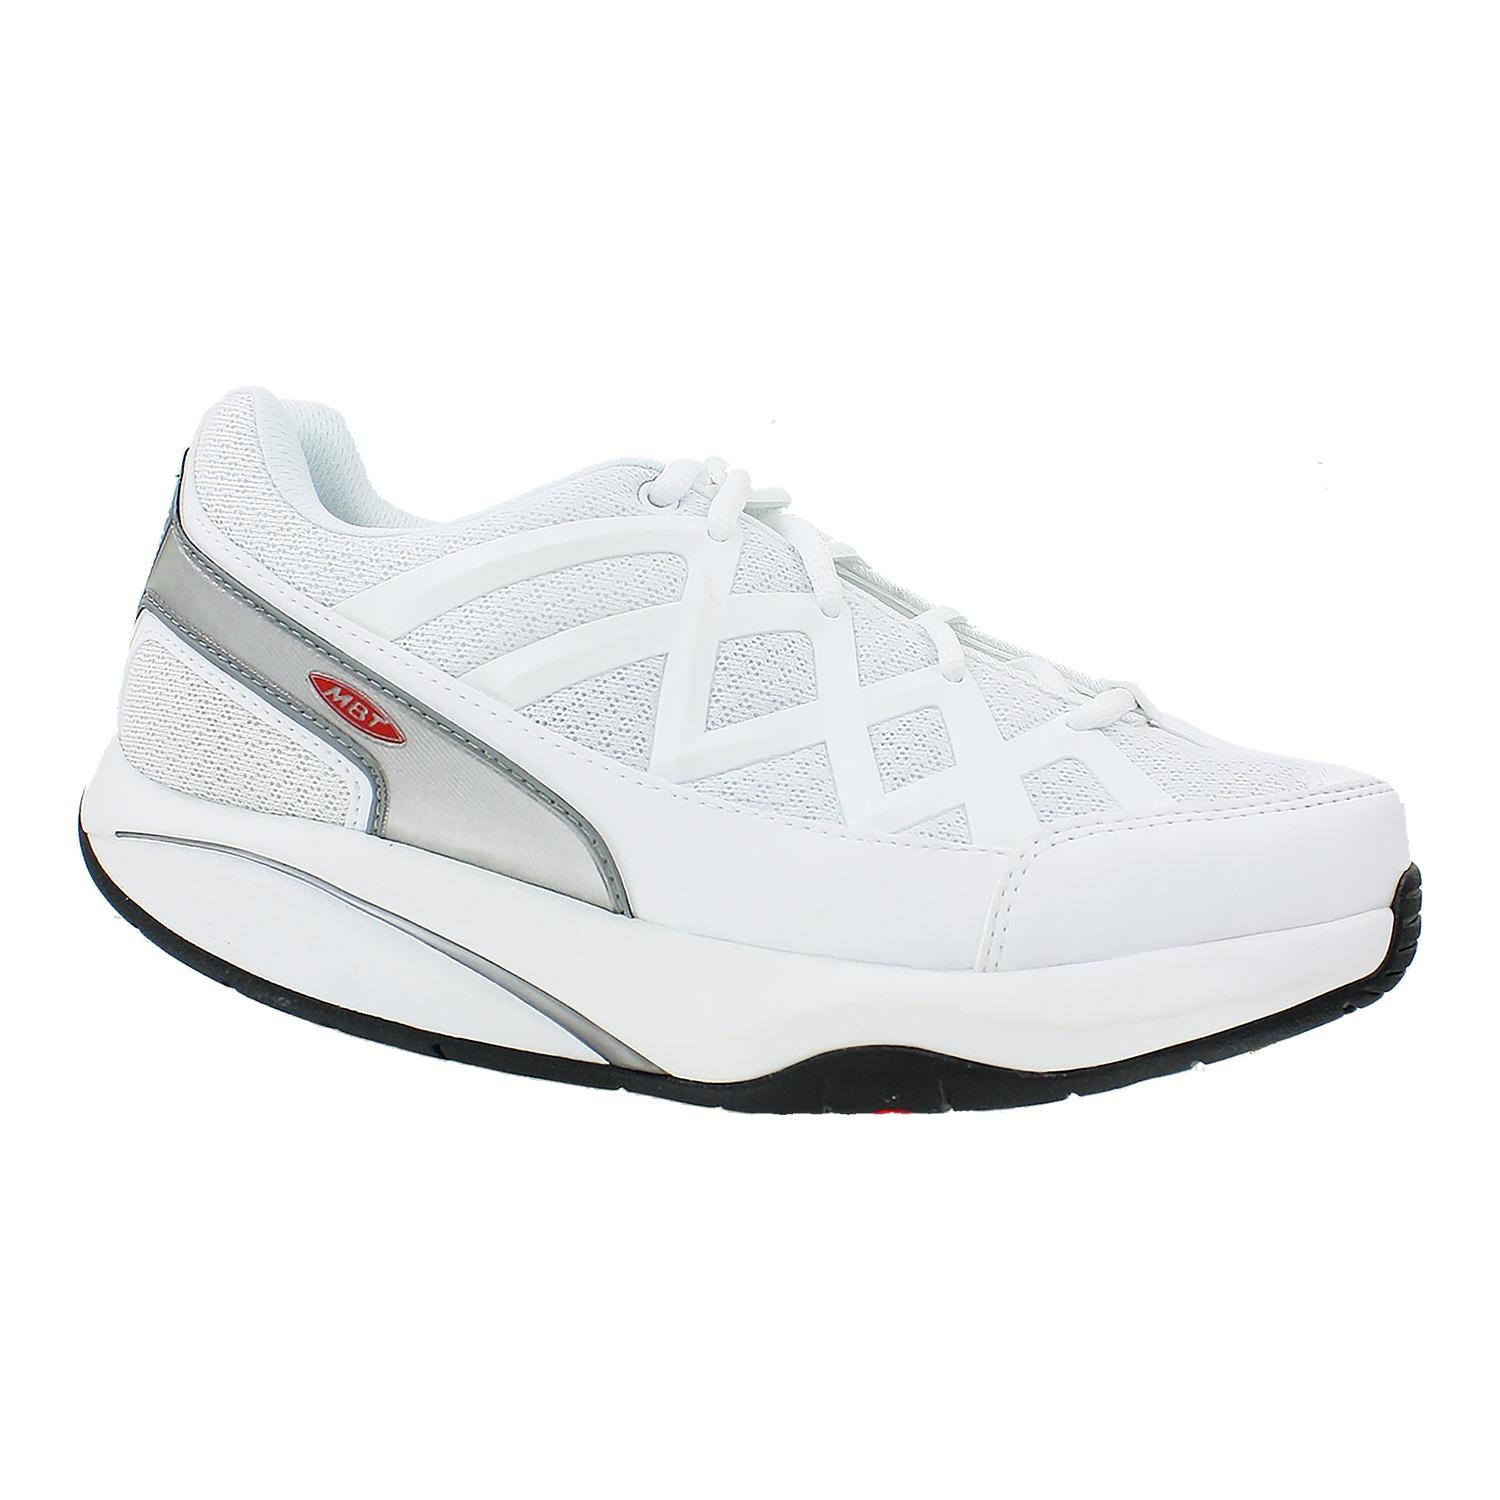 b88e3167a523 MBT Men s White Sport 3 Walking Shoes 400334 EU 40   US 6-6.5  184.95 NWOB